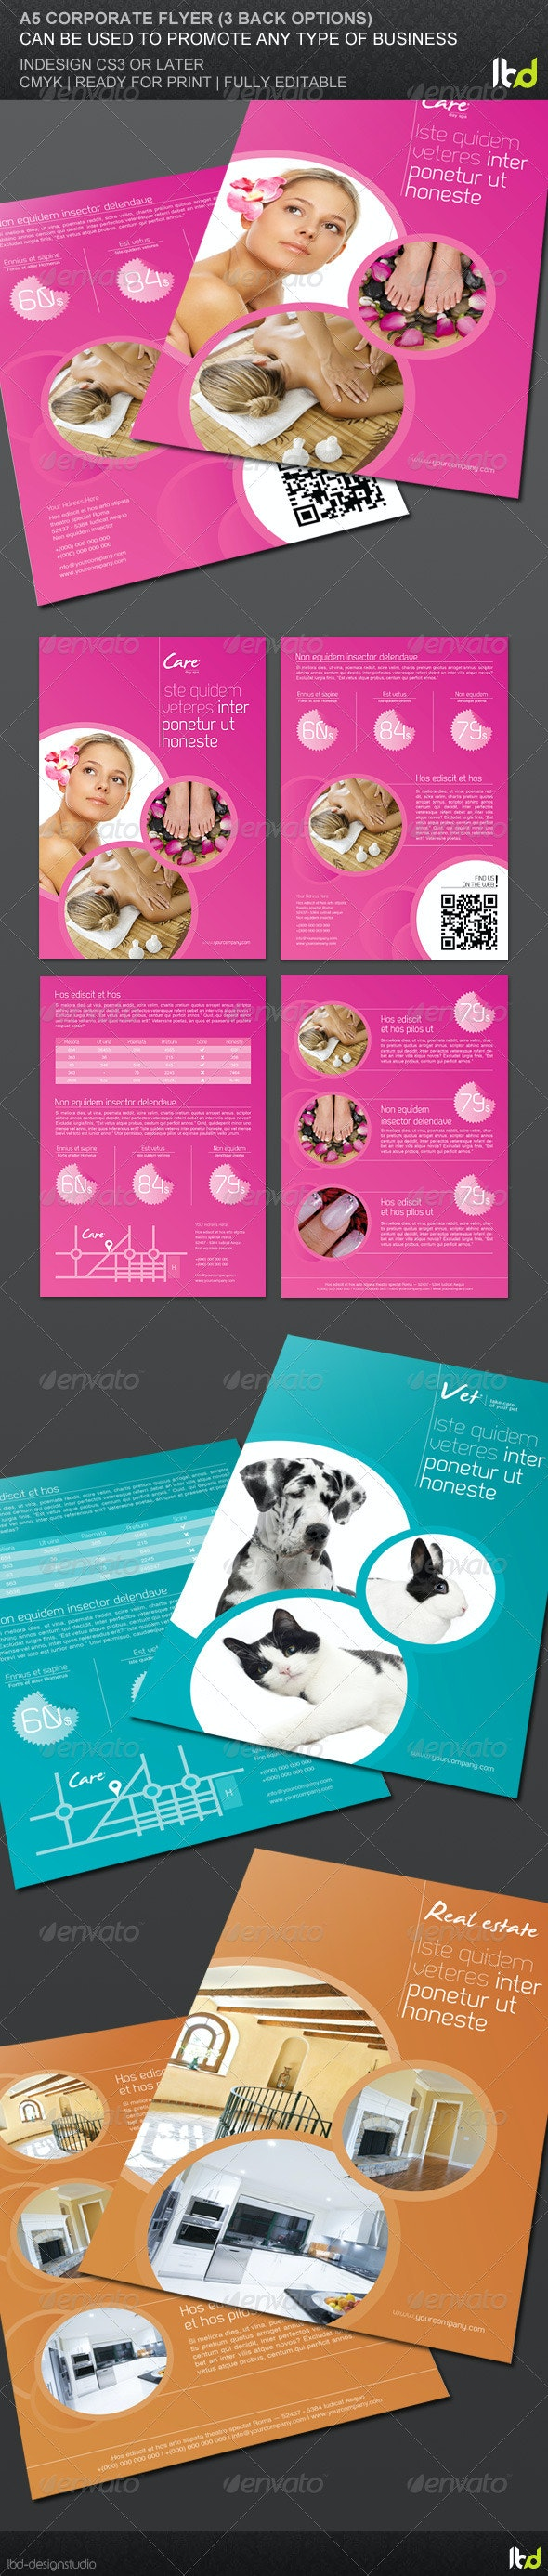 Promotional Flyer - Corporate Flyers